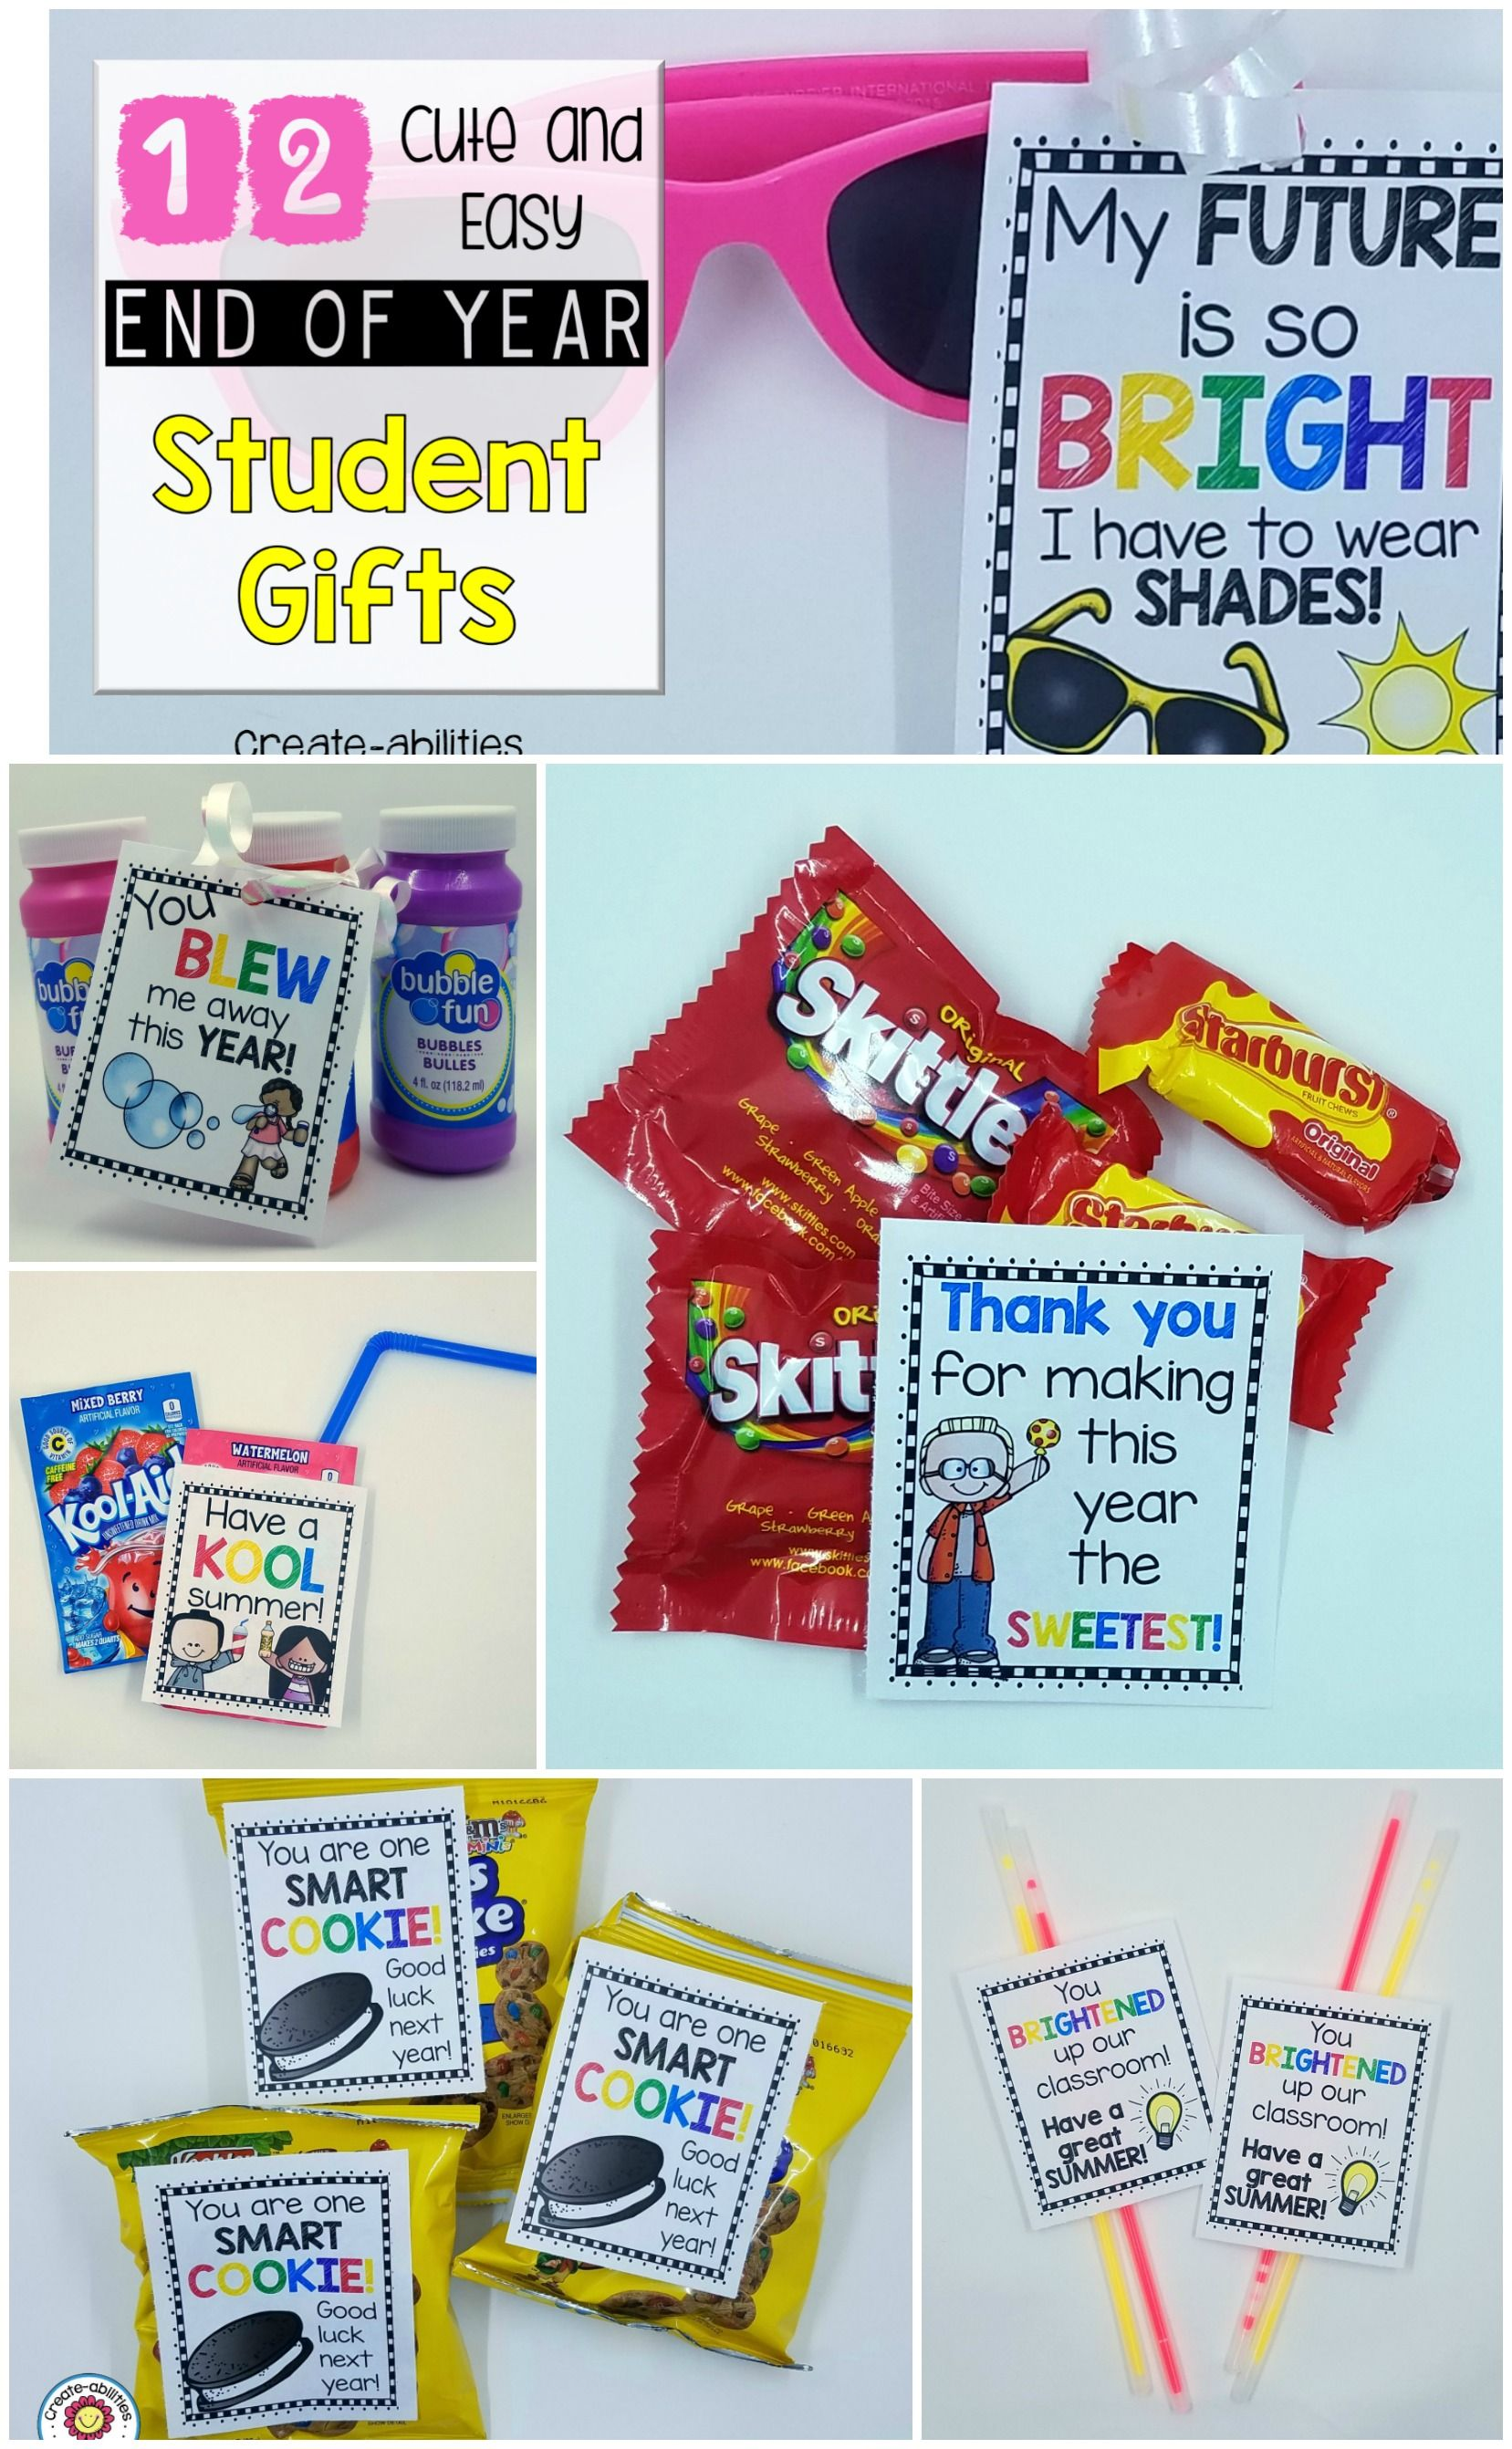 Student Gift Idea Perfect for End of Year